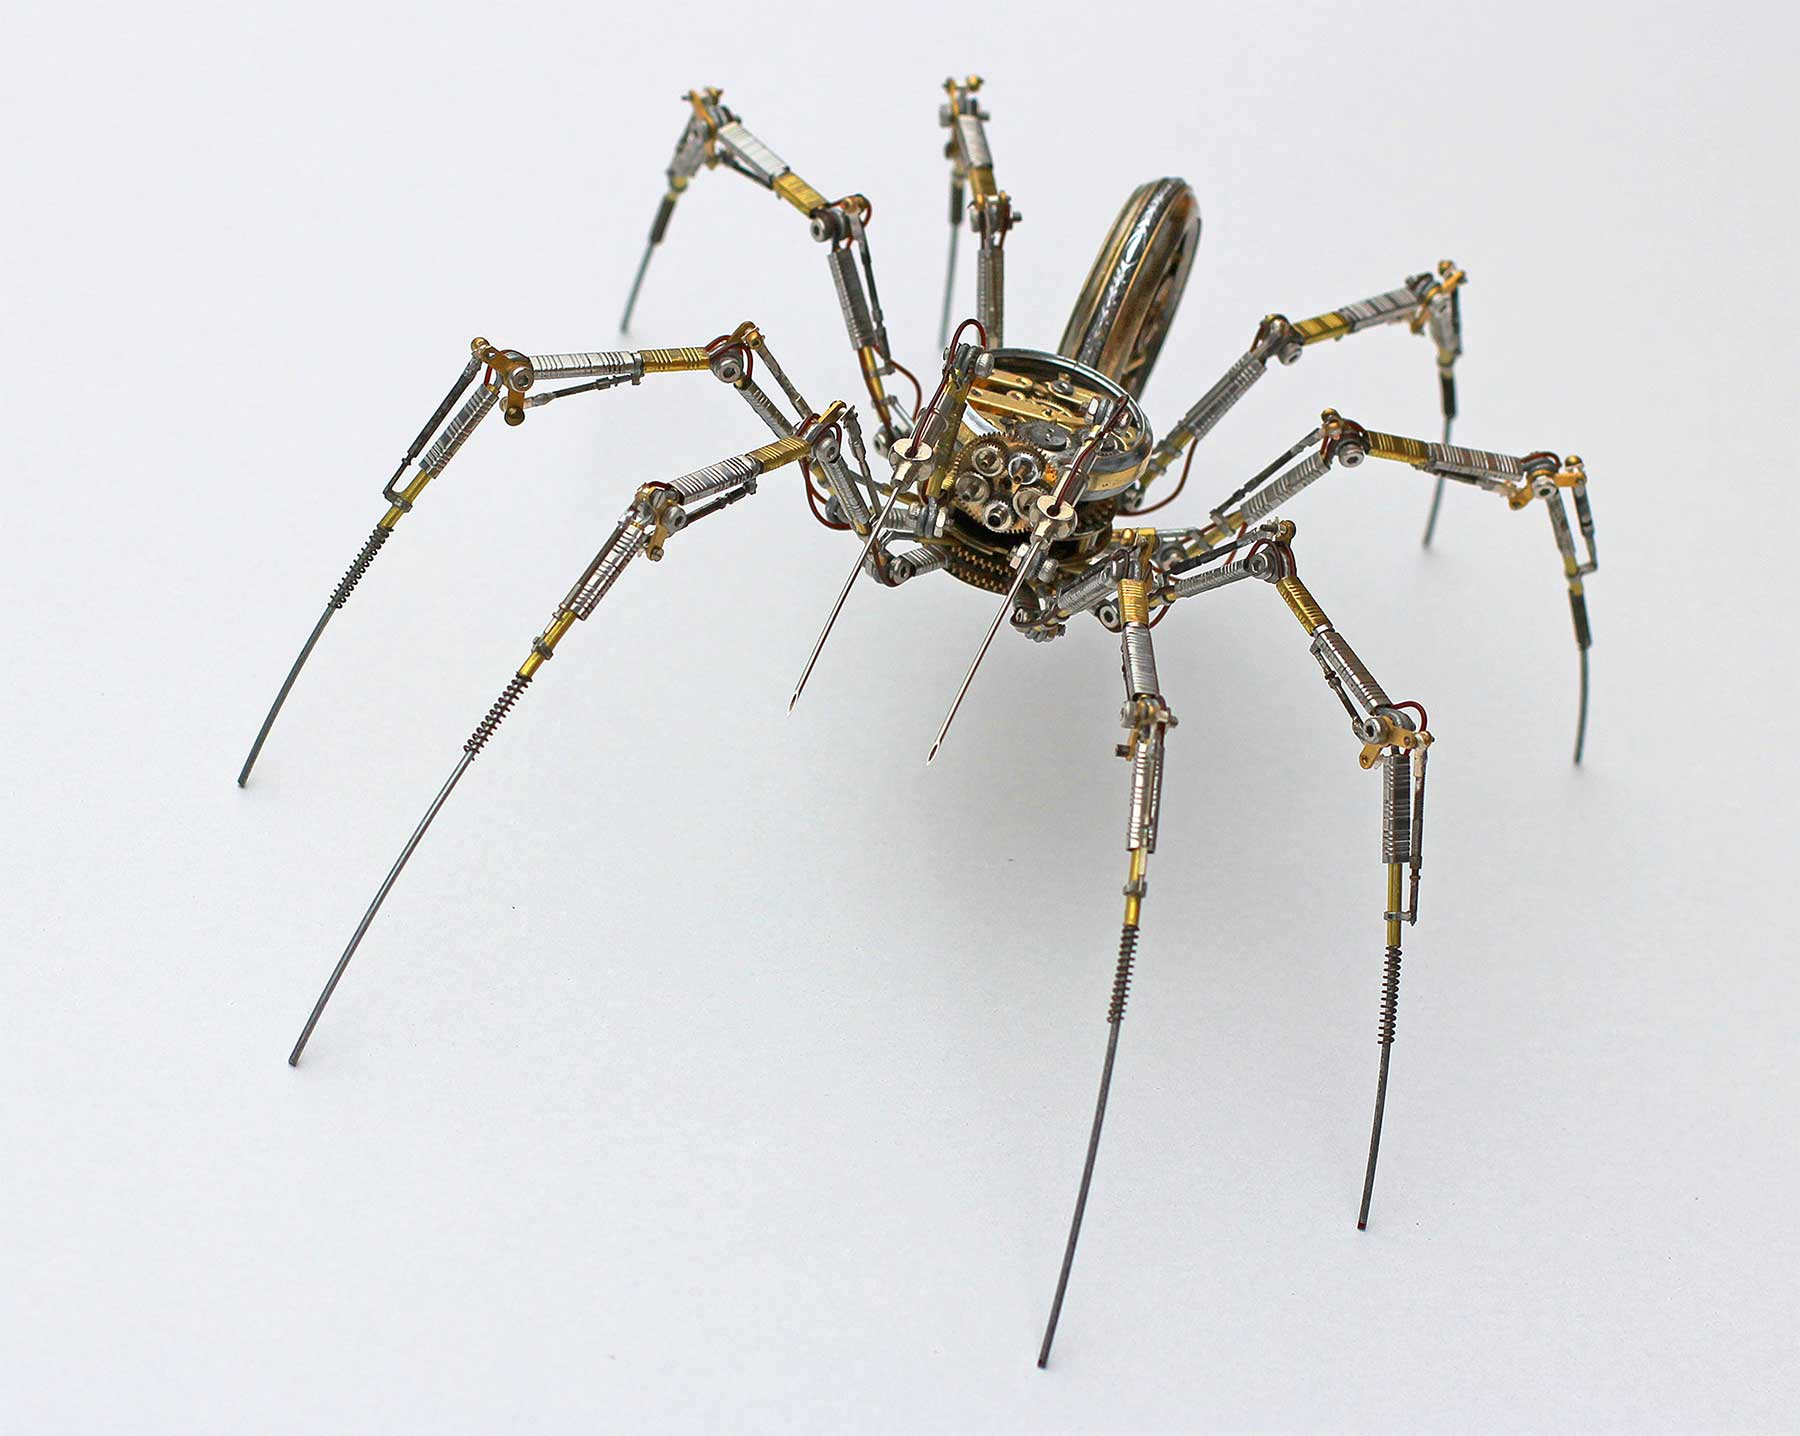 Steampunk Spiders von Peter Szucsy Steampunk-Spiders-Peter-Szucsy_04